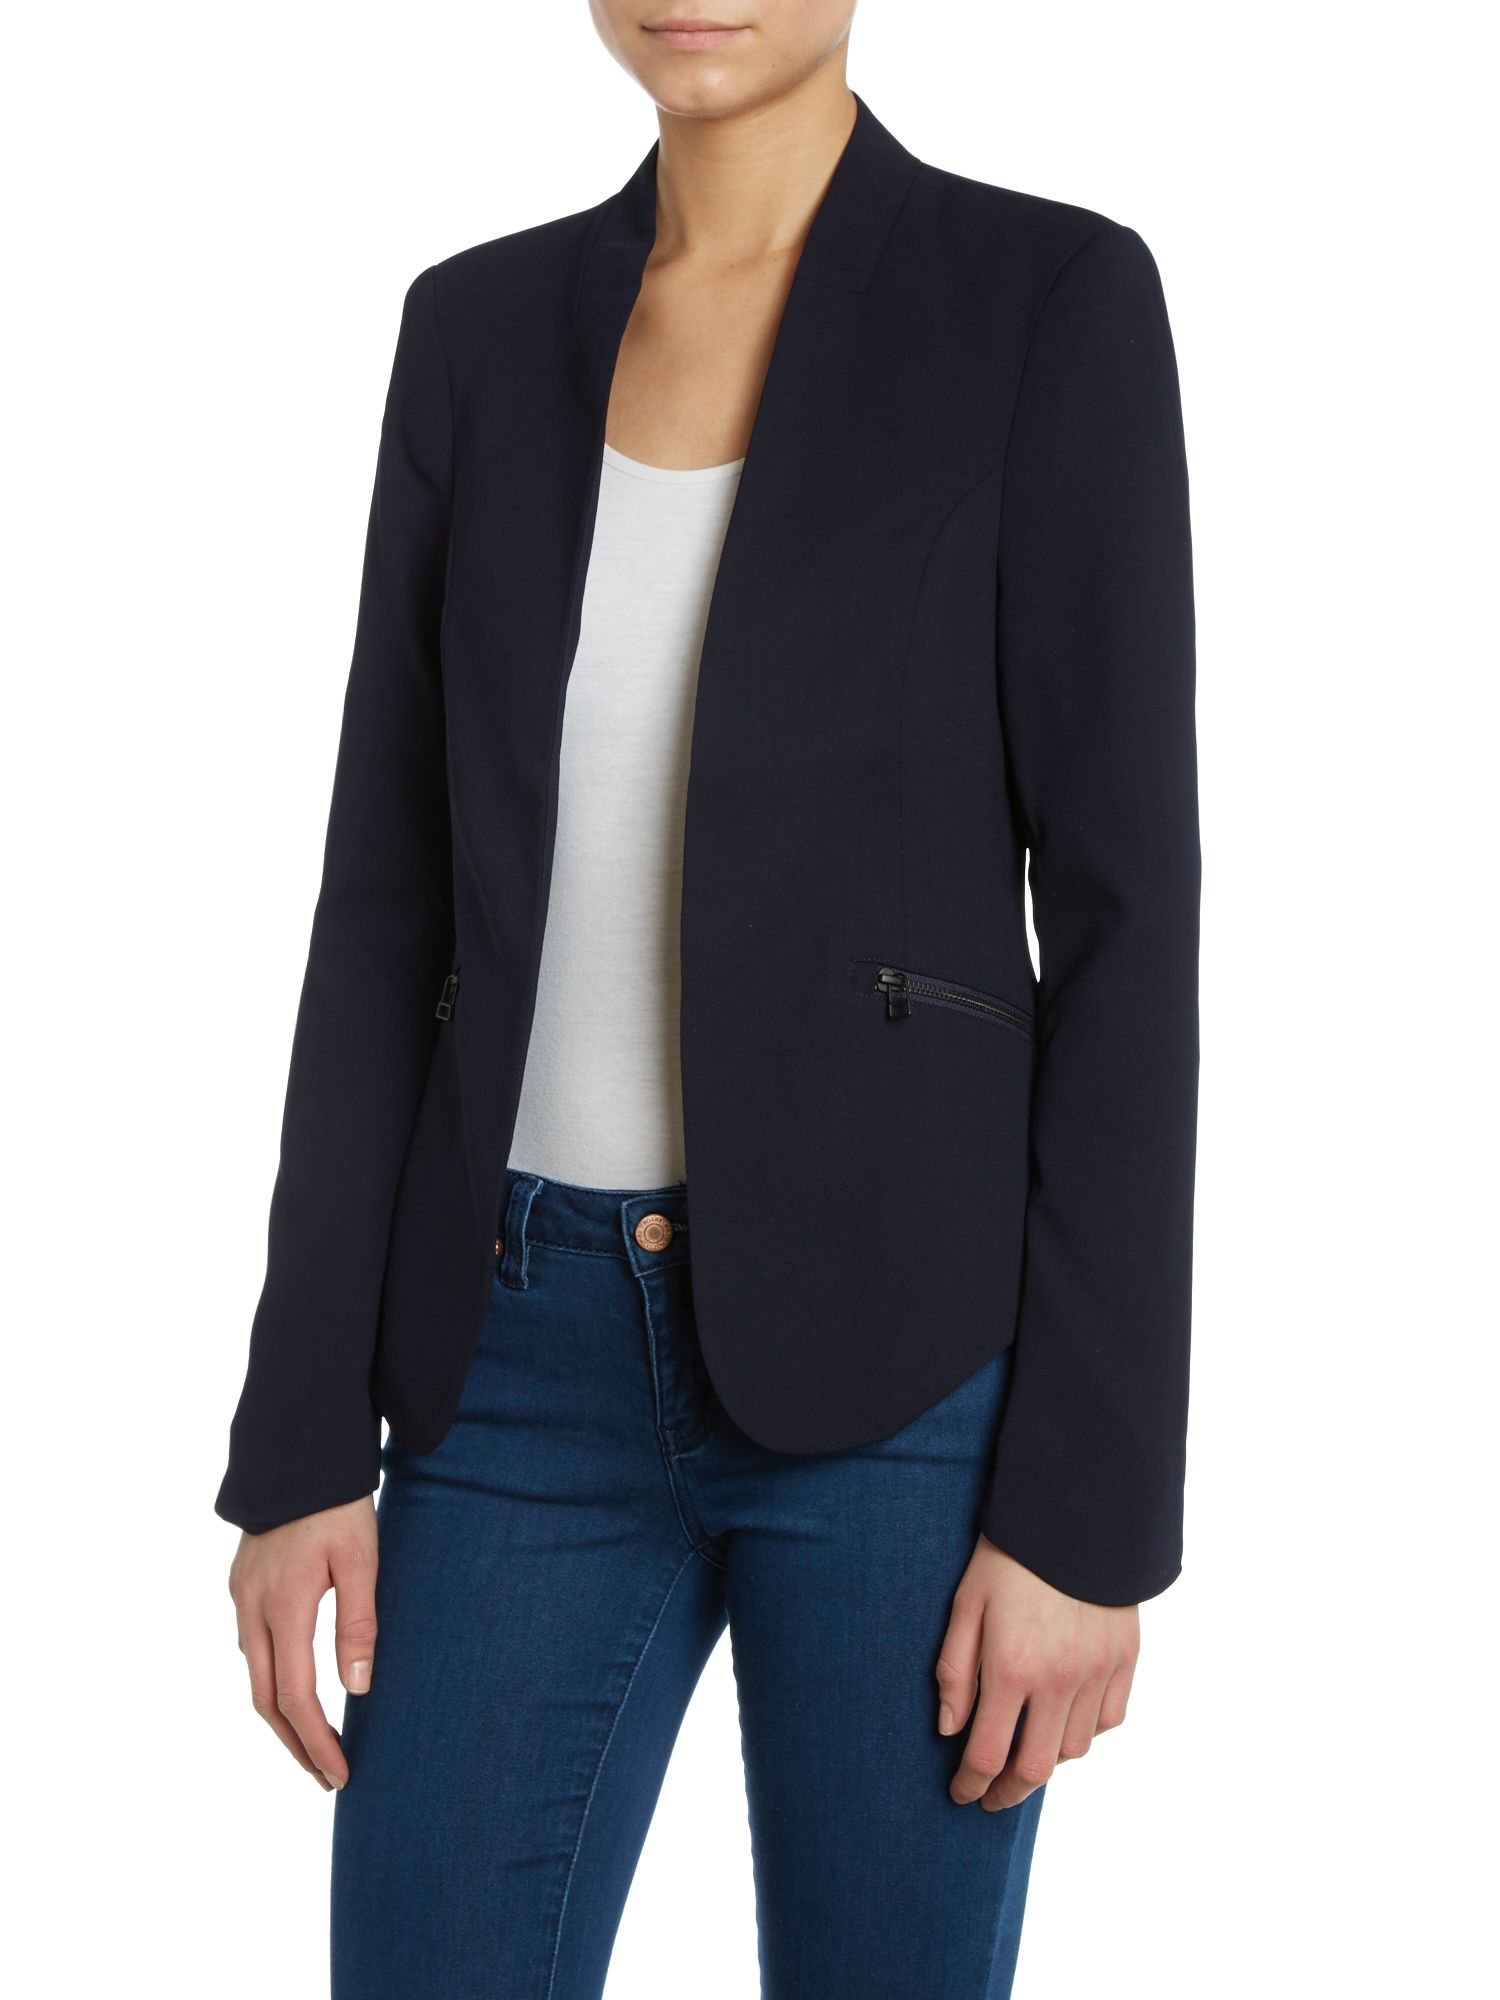 Brio collarless blazer